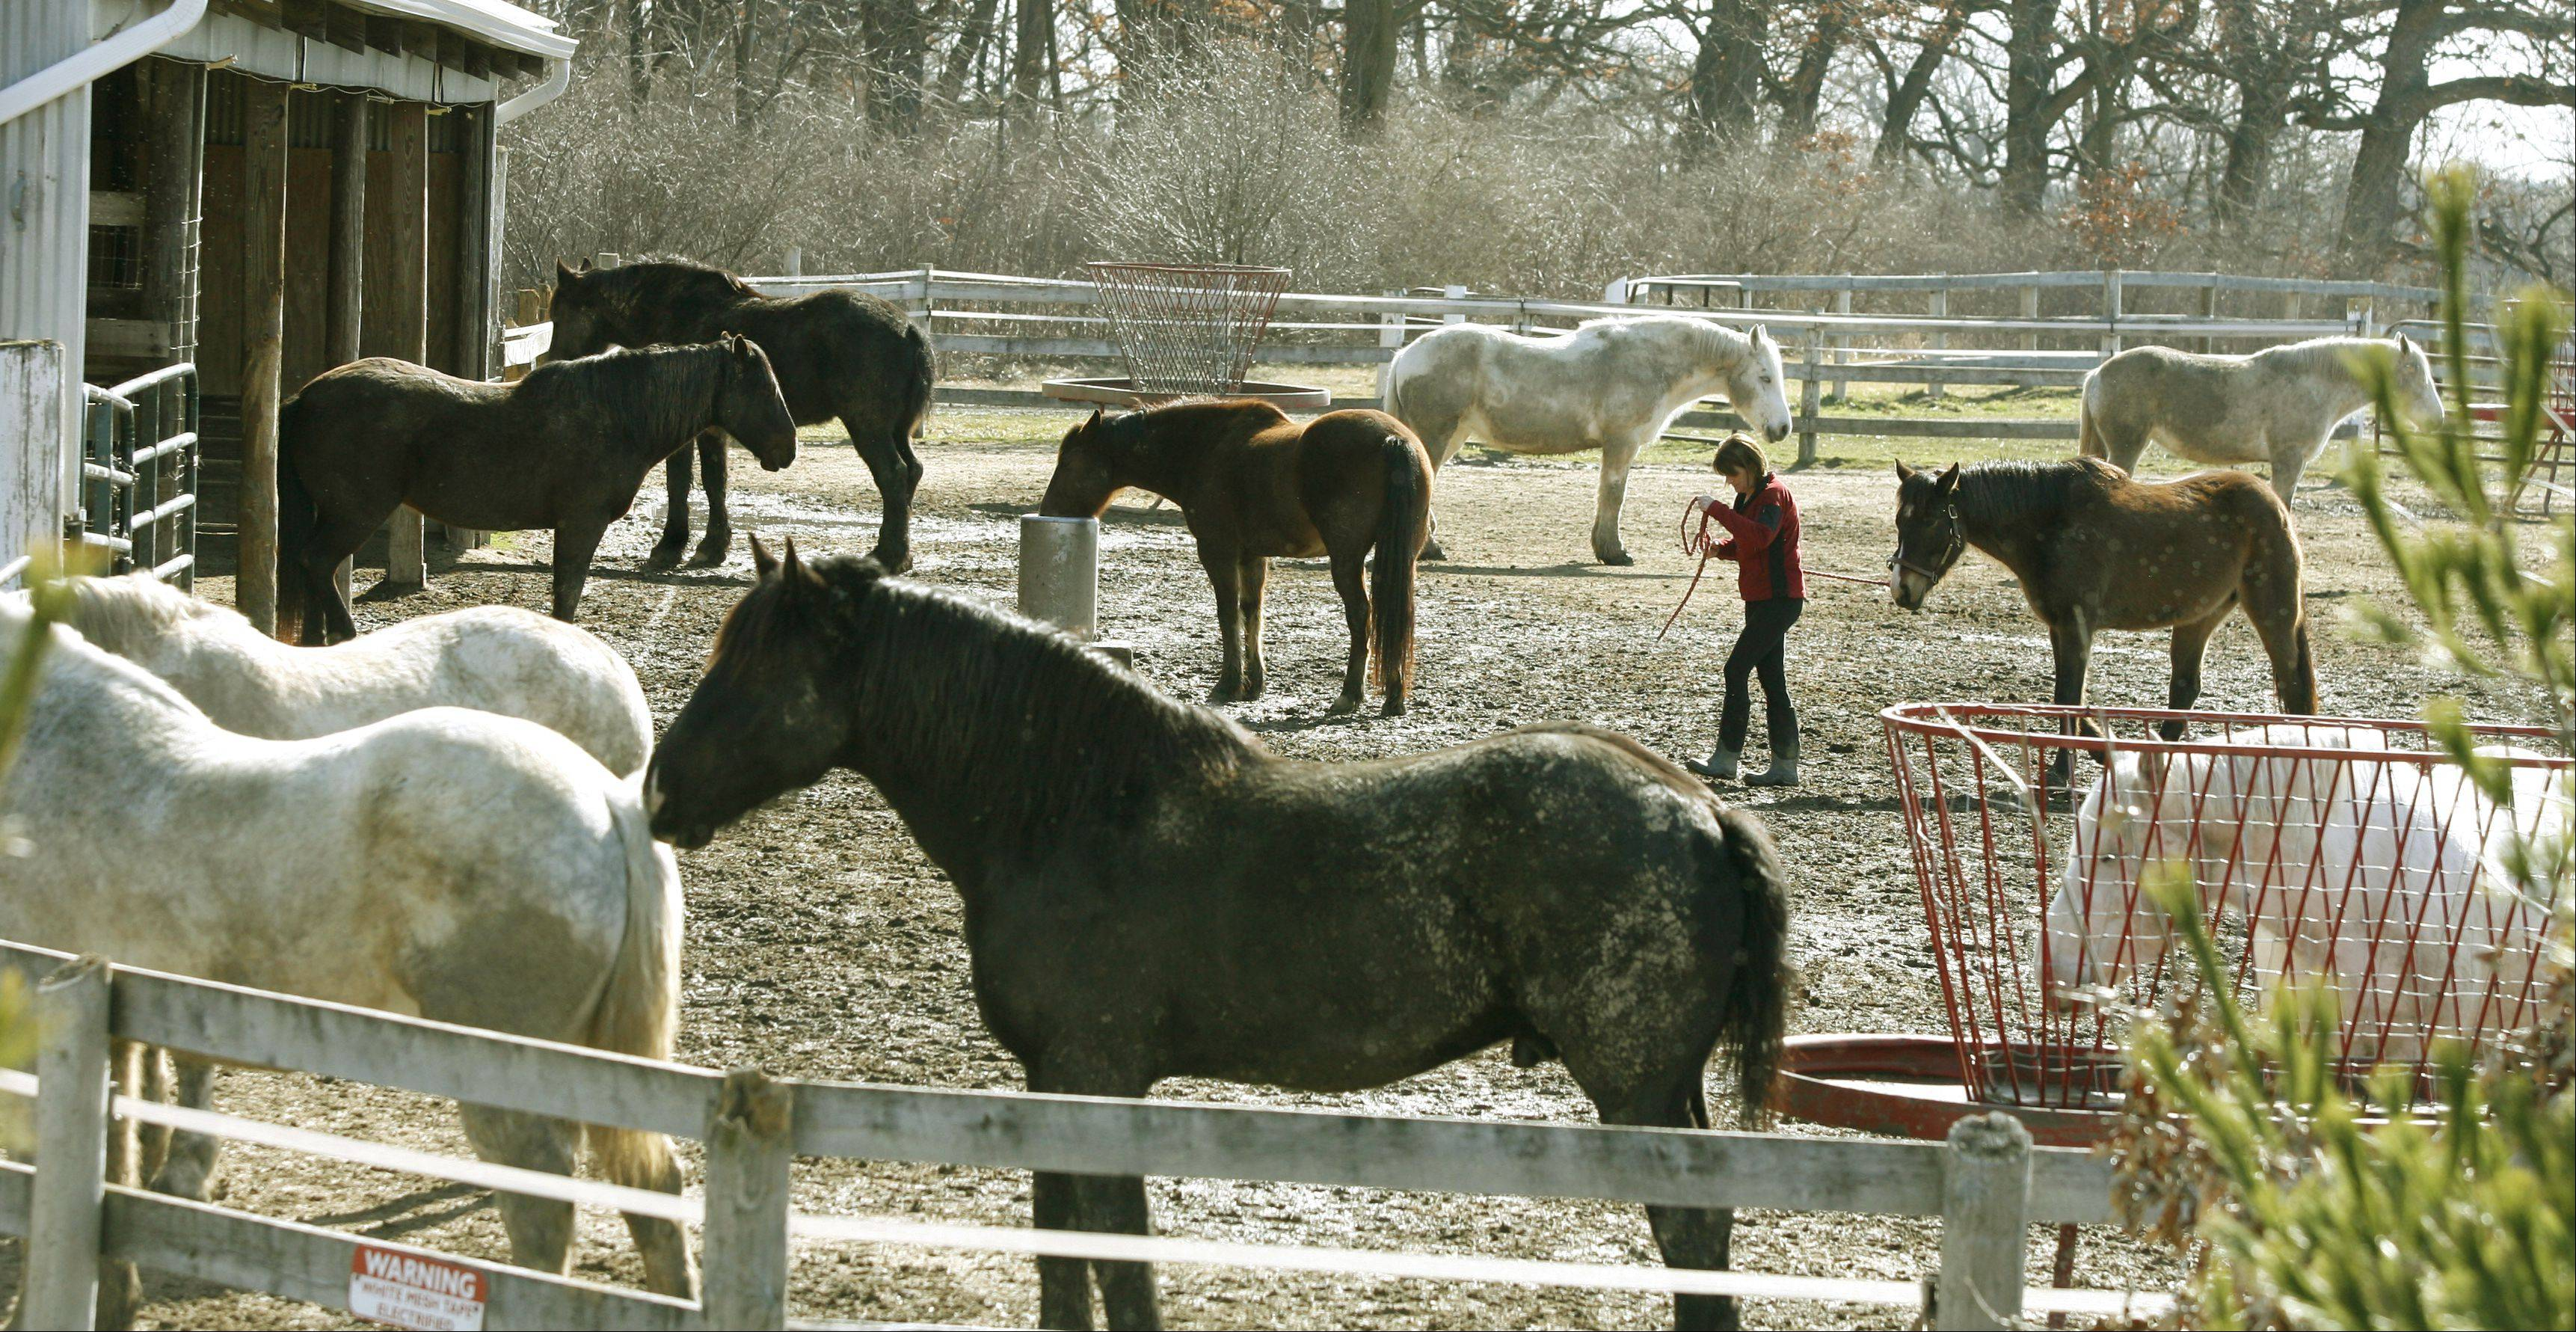 DuPage forest investigates complaints of horse neglect at Danada